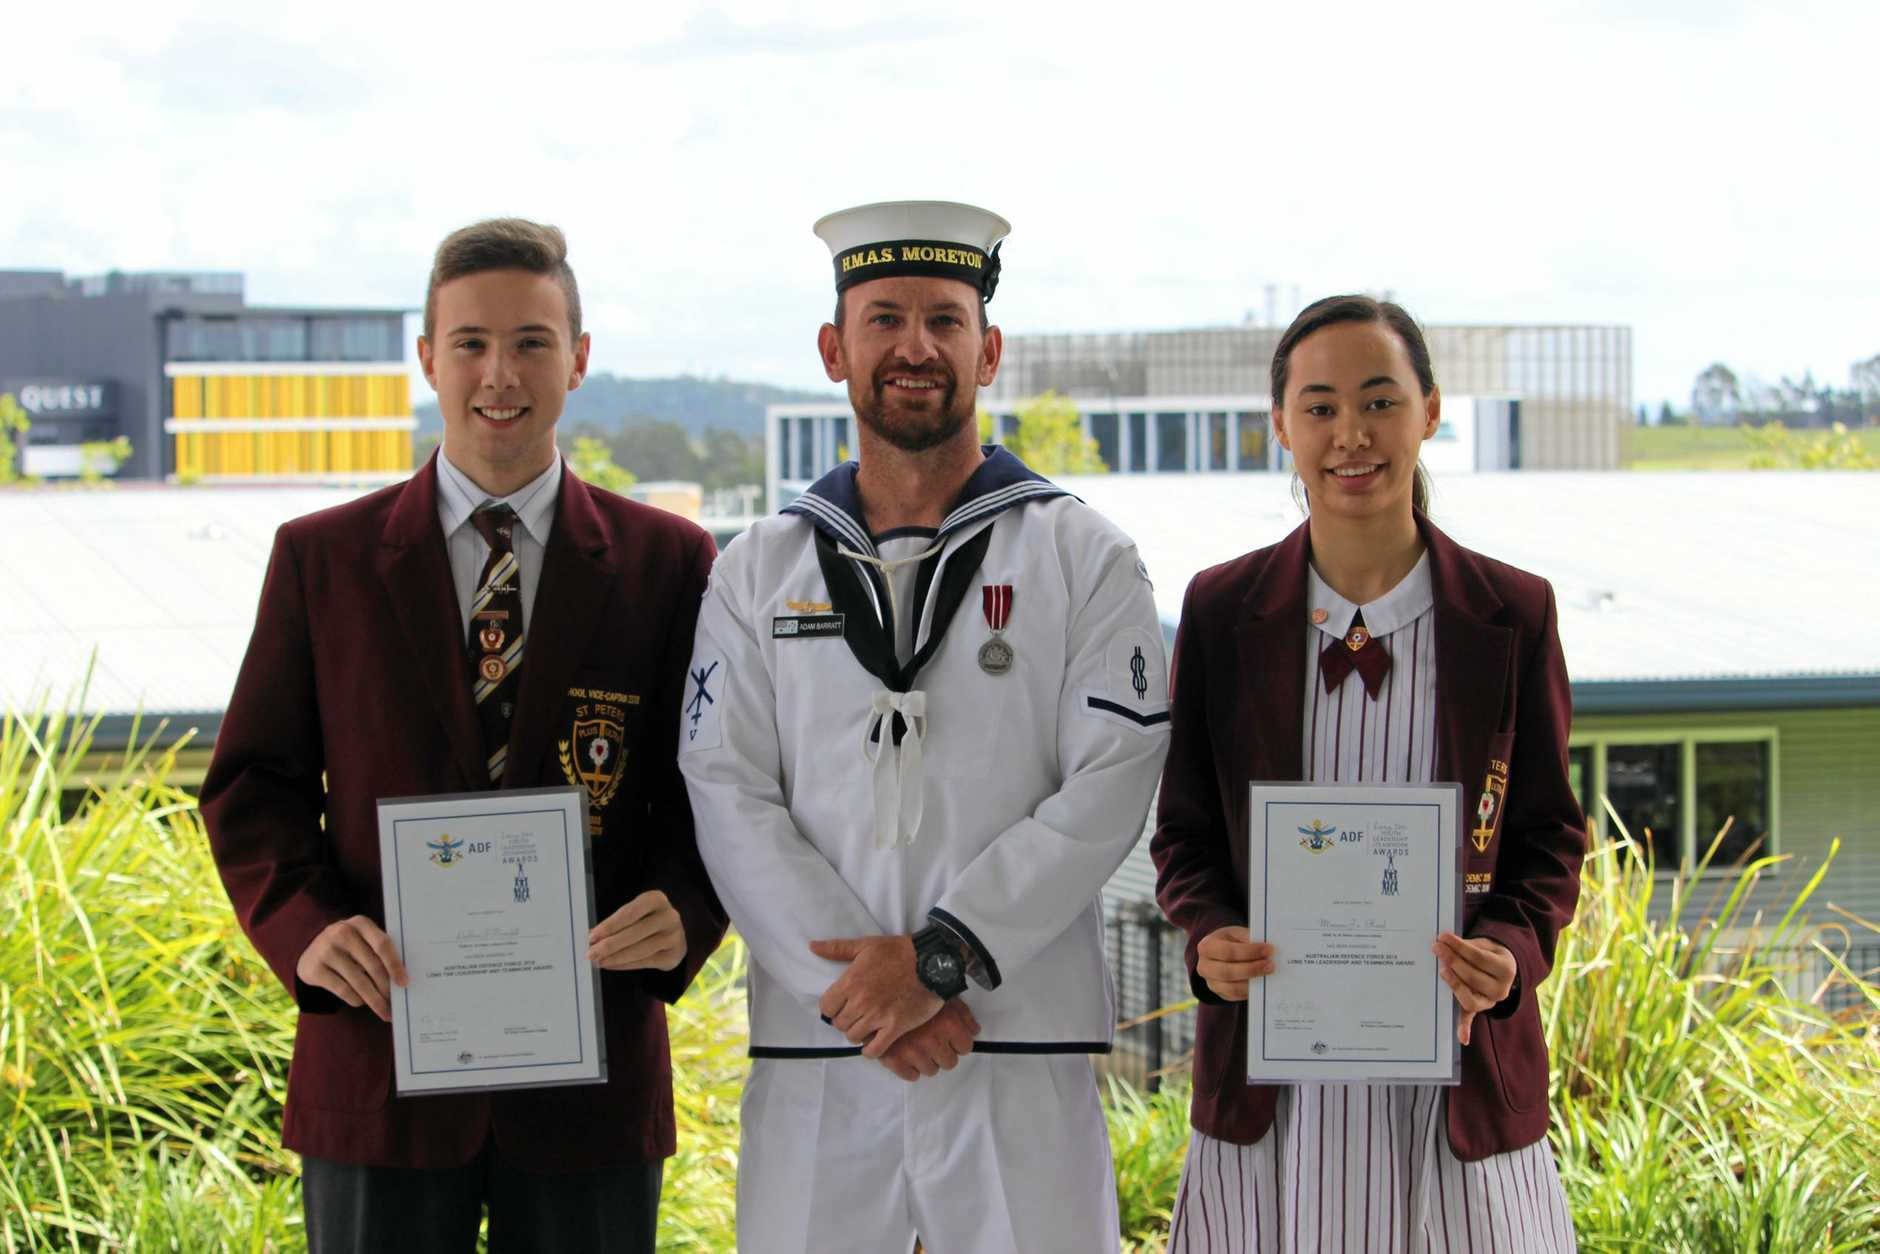 St Peters Lutheran College students Minami Hood and Lachlan Brindell were presented with Long Tan Youth Leadership and Teamwork Awards by Adam Barratt from the Defence Forces.